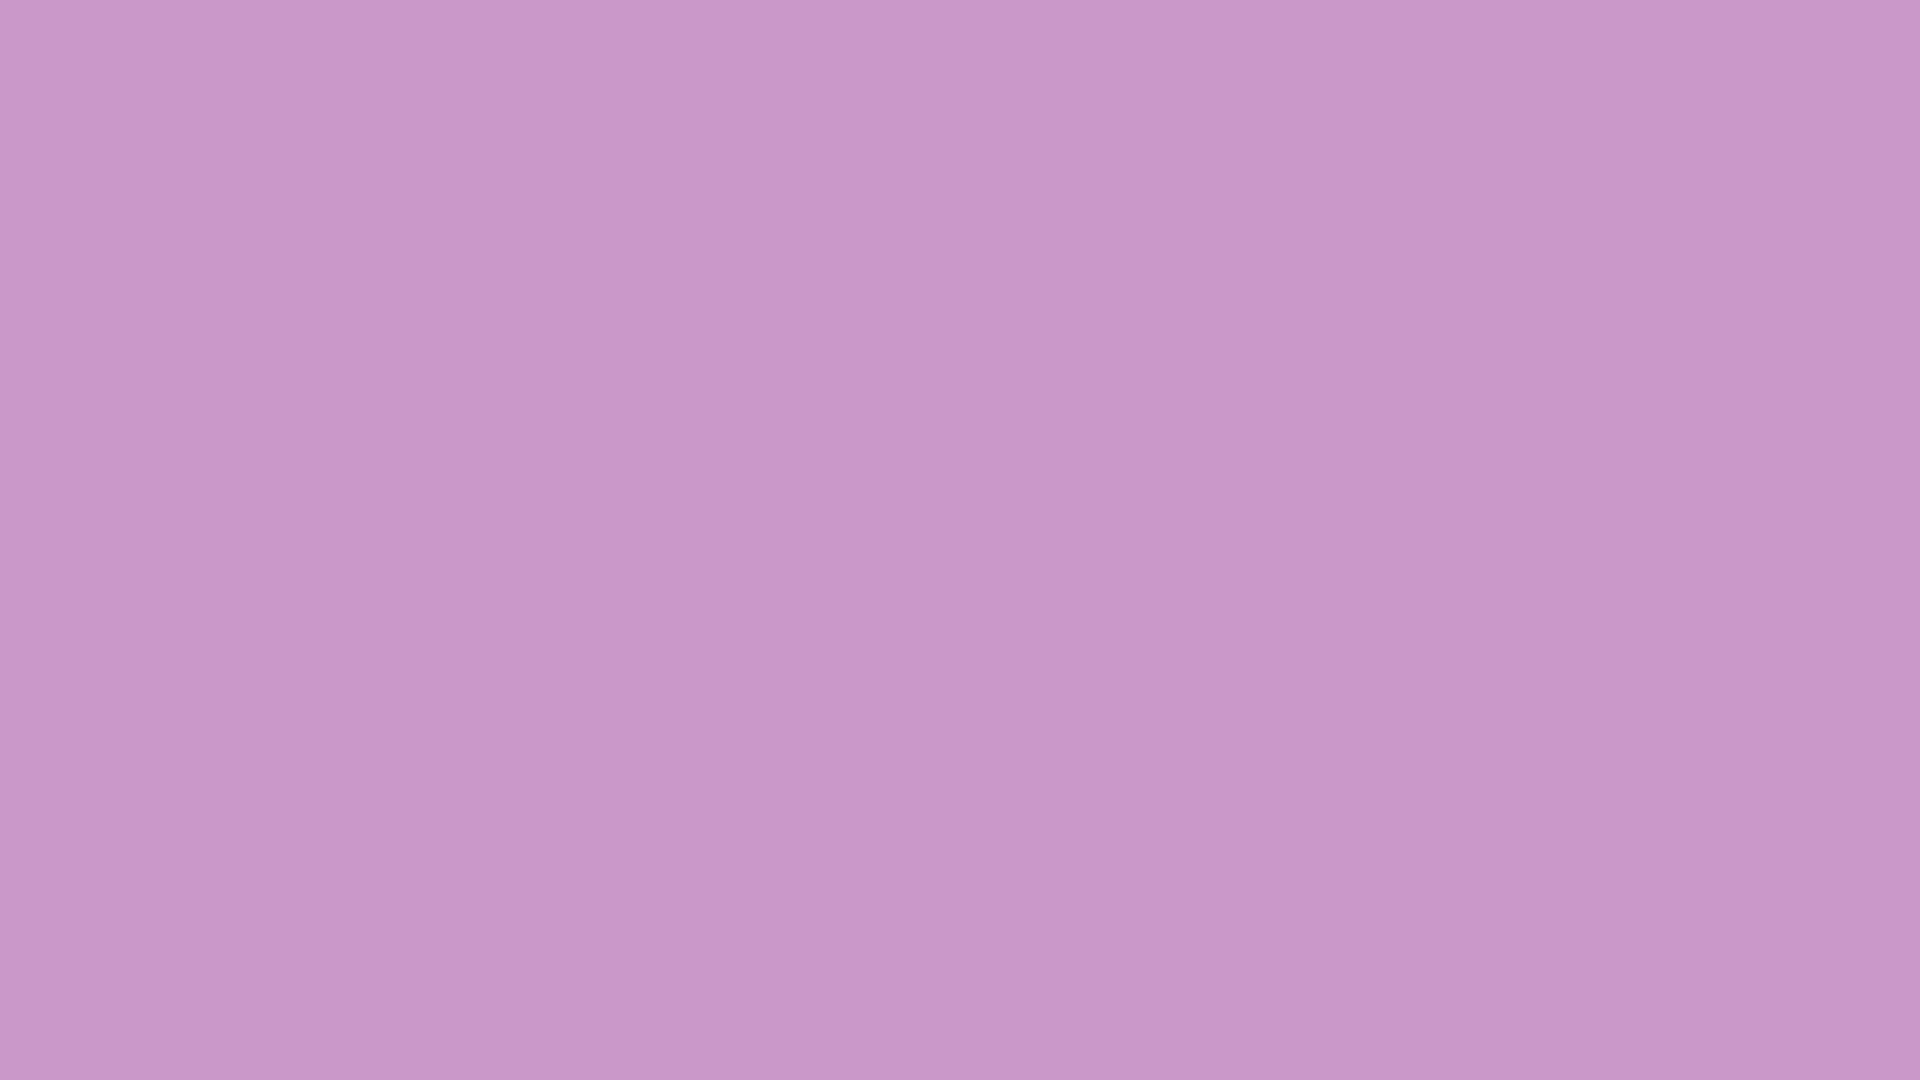 Pink and purple - 1 4